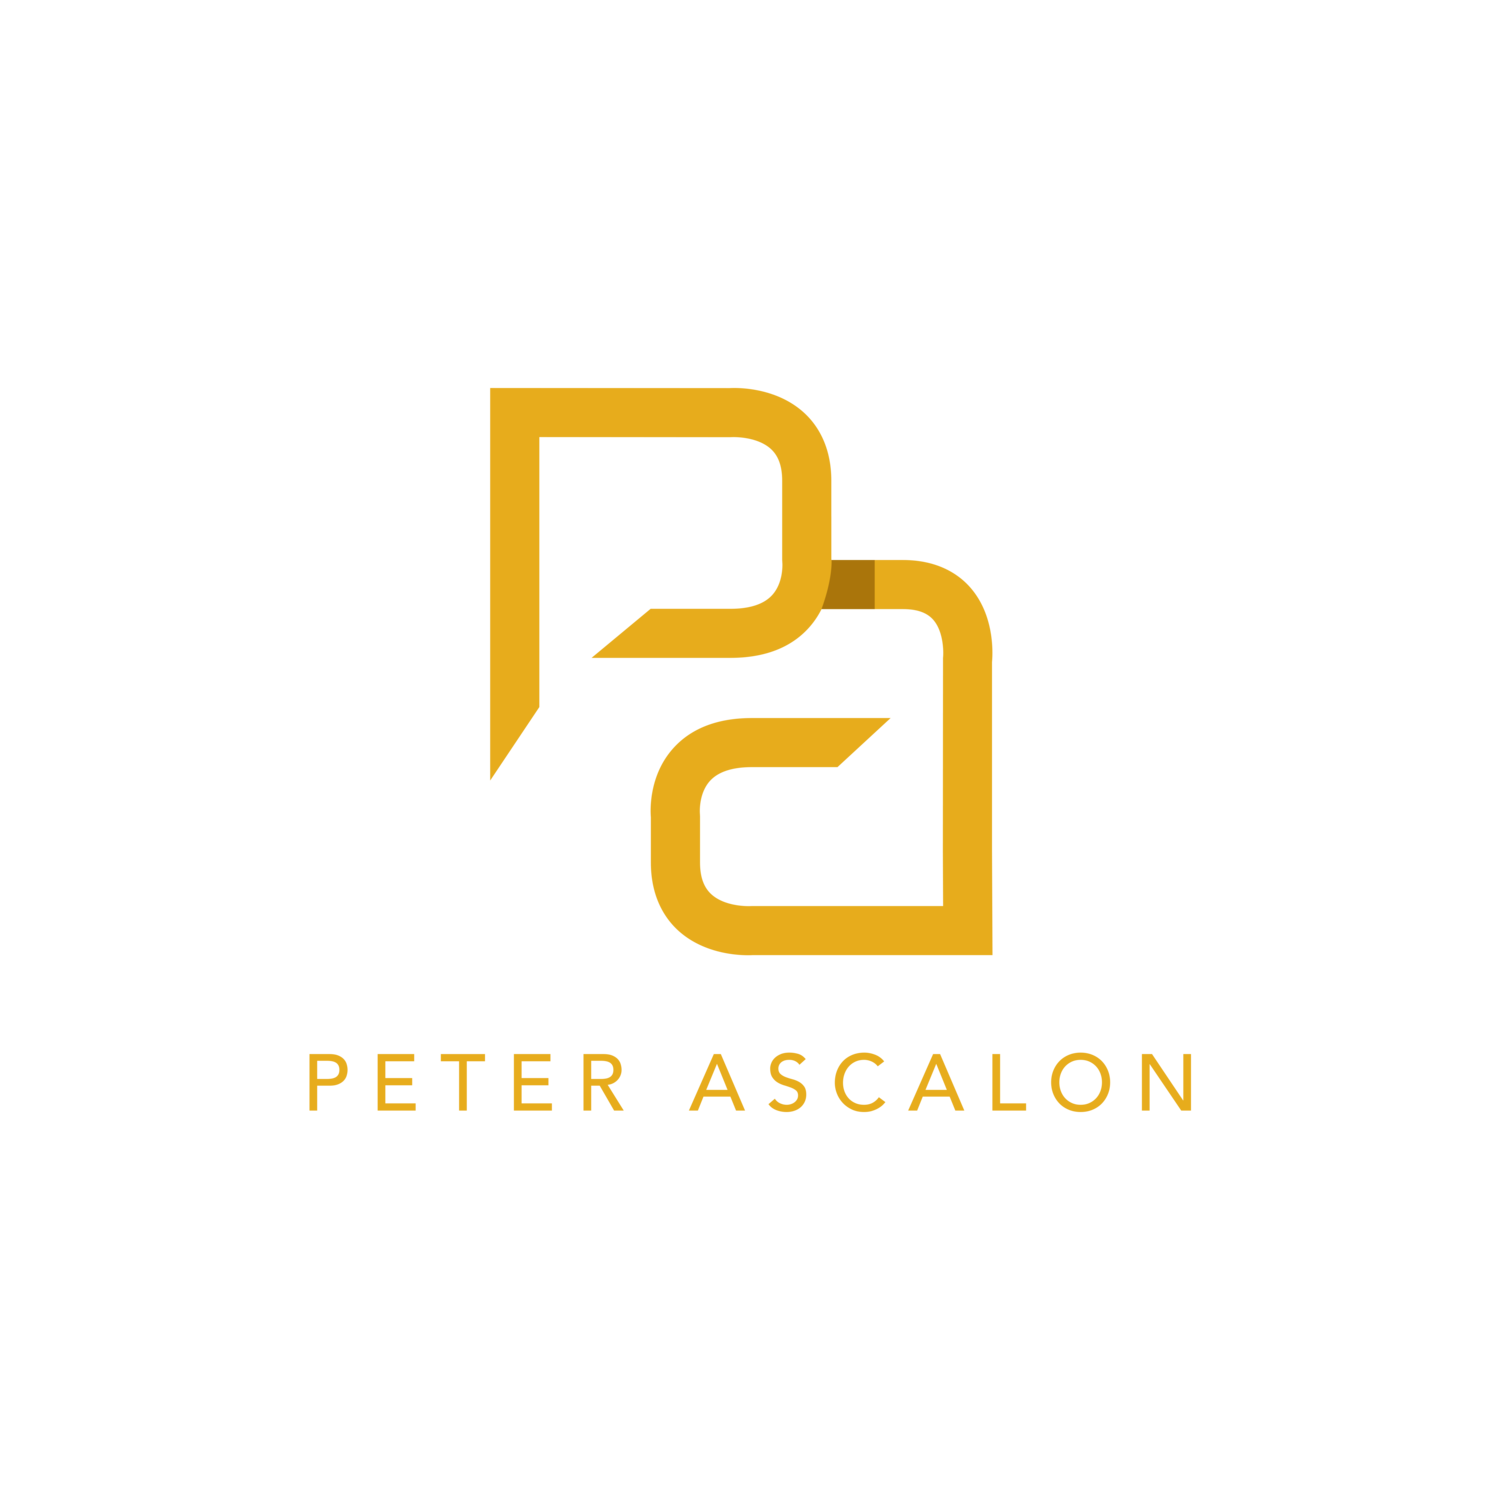 PETER ASCALON